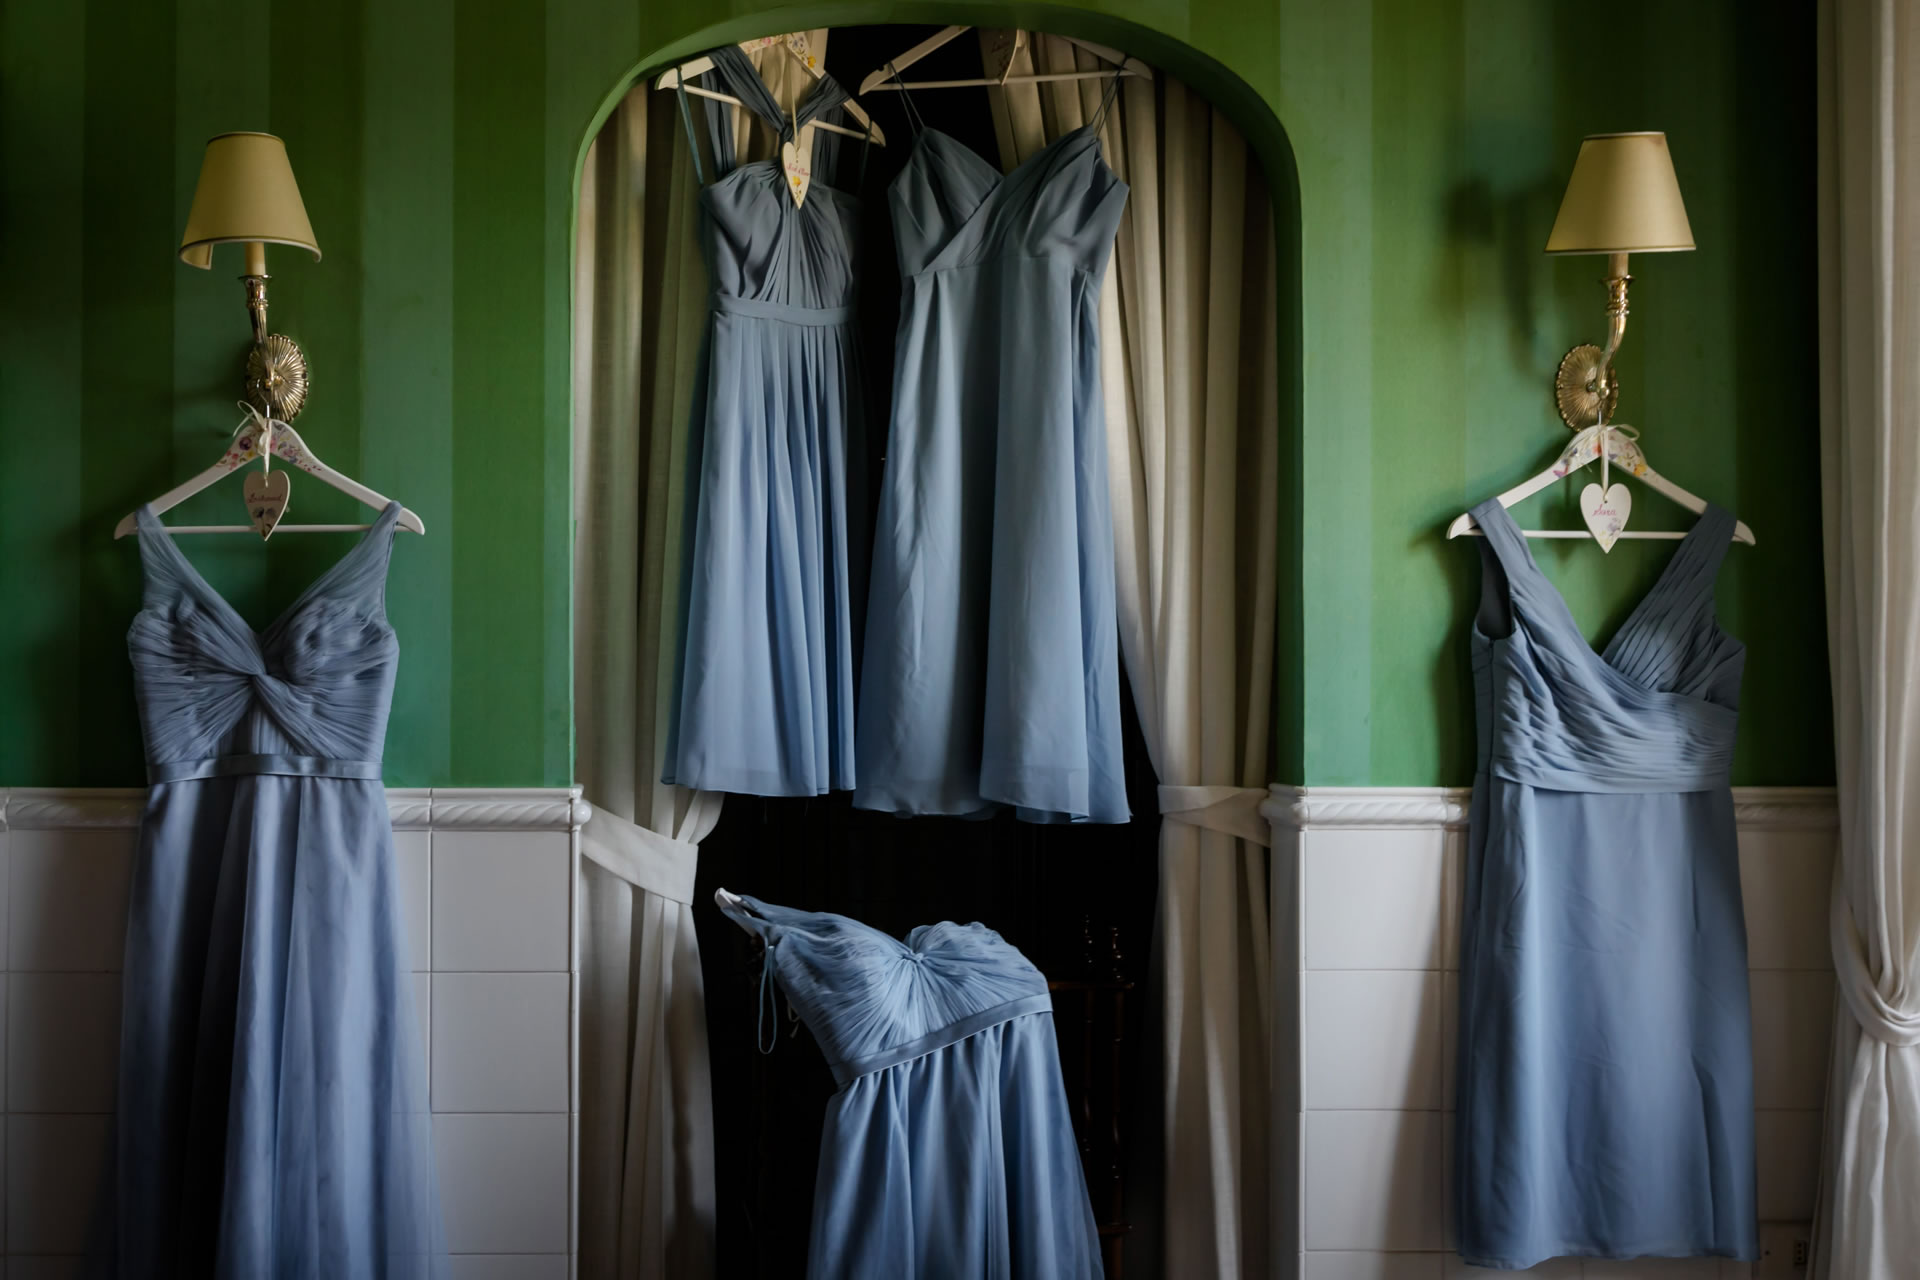 Bridesmaids - 3 :: Amazing wedding day at Il Borro :: Luxury wedding photography - 2 :: Bridesmaids - 3